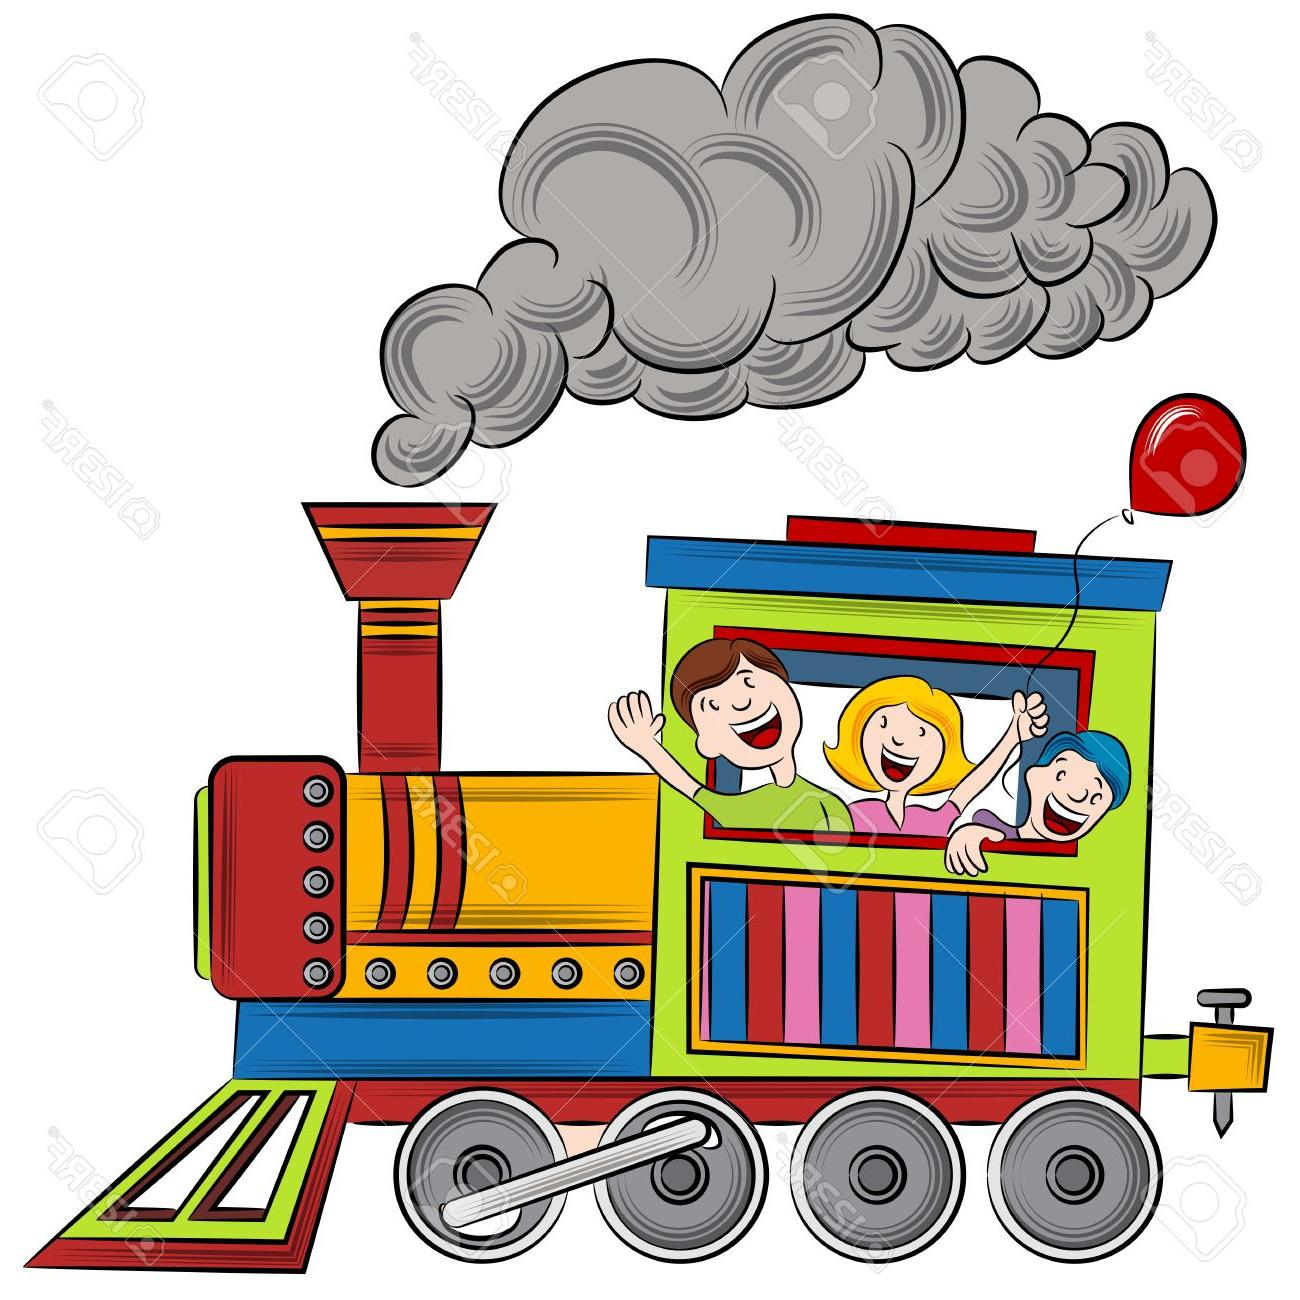 Train Pictures For Children Free Download On Clipartmag